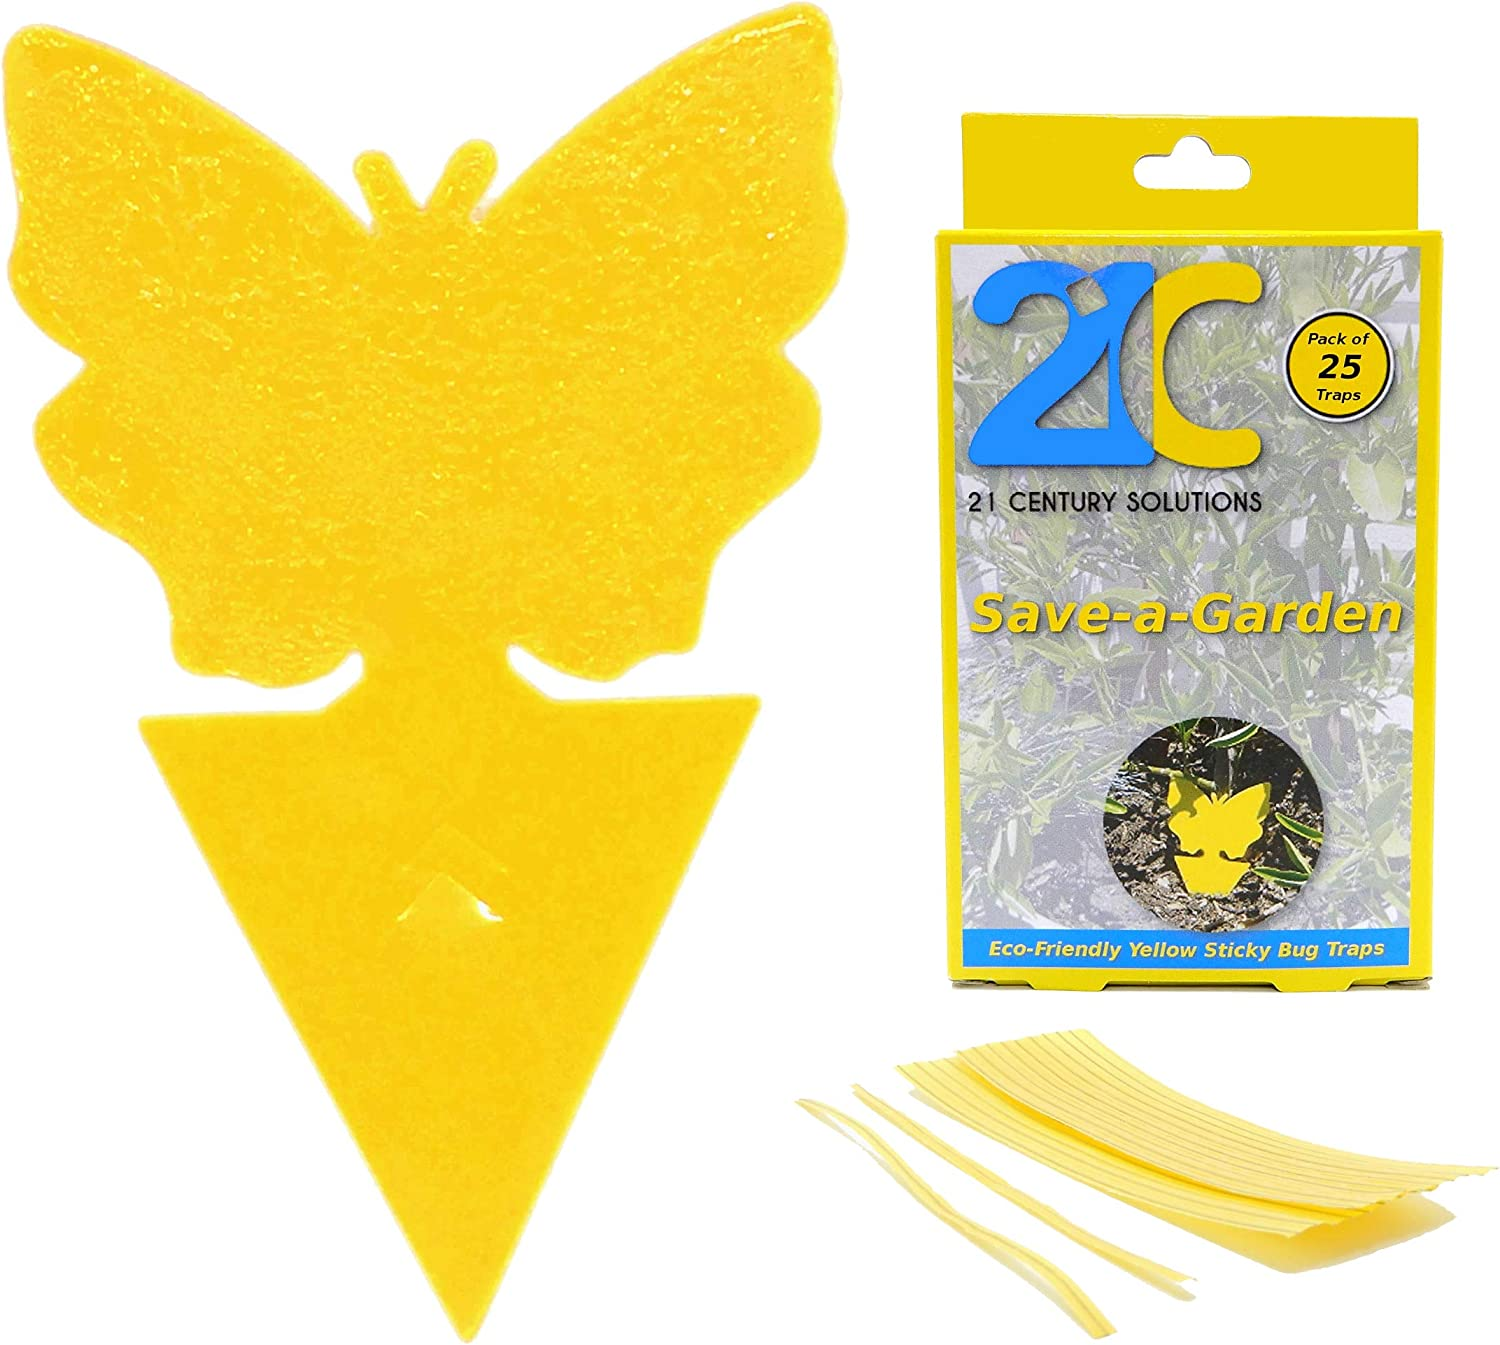 21C Yellow Dual Sticky Fly Traps (25 Pack) for Gnat Whitefly Fungus Gnat Leafminer Aphid Small Insects - Houseplant Bug Catcher - Eco Friendly Save a Garden Butterfly Shape